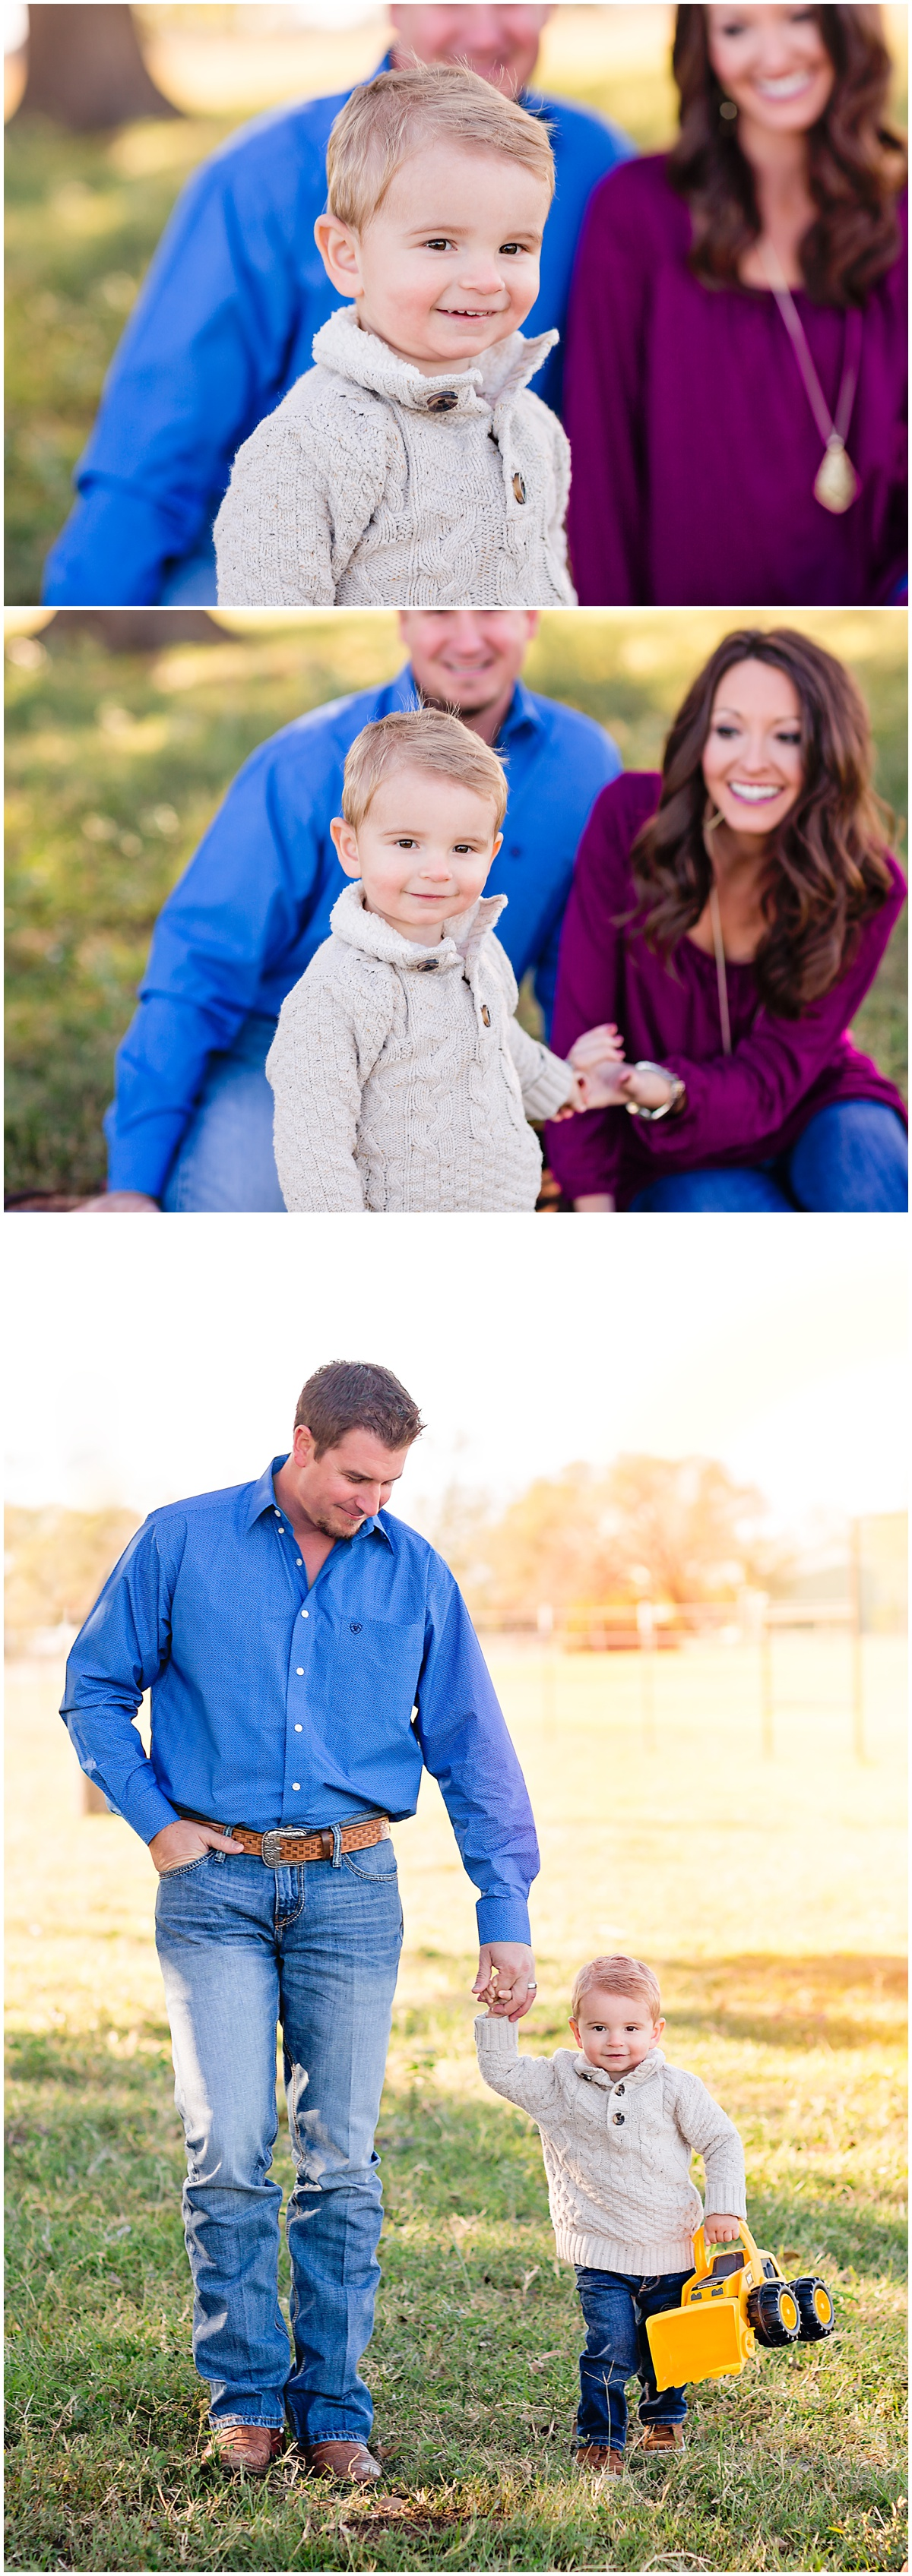 Family-Children-Maternity-Portraits-San-Antonio-Hill-Country-Texas-Carly-Barton-Photography_0065.jpg